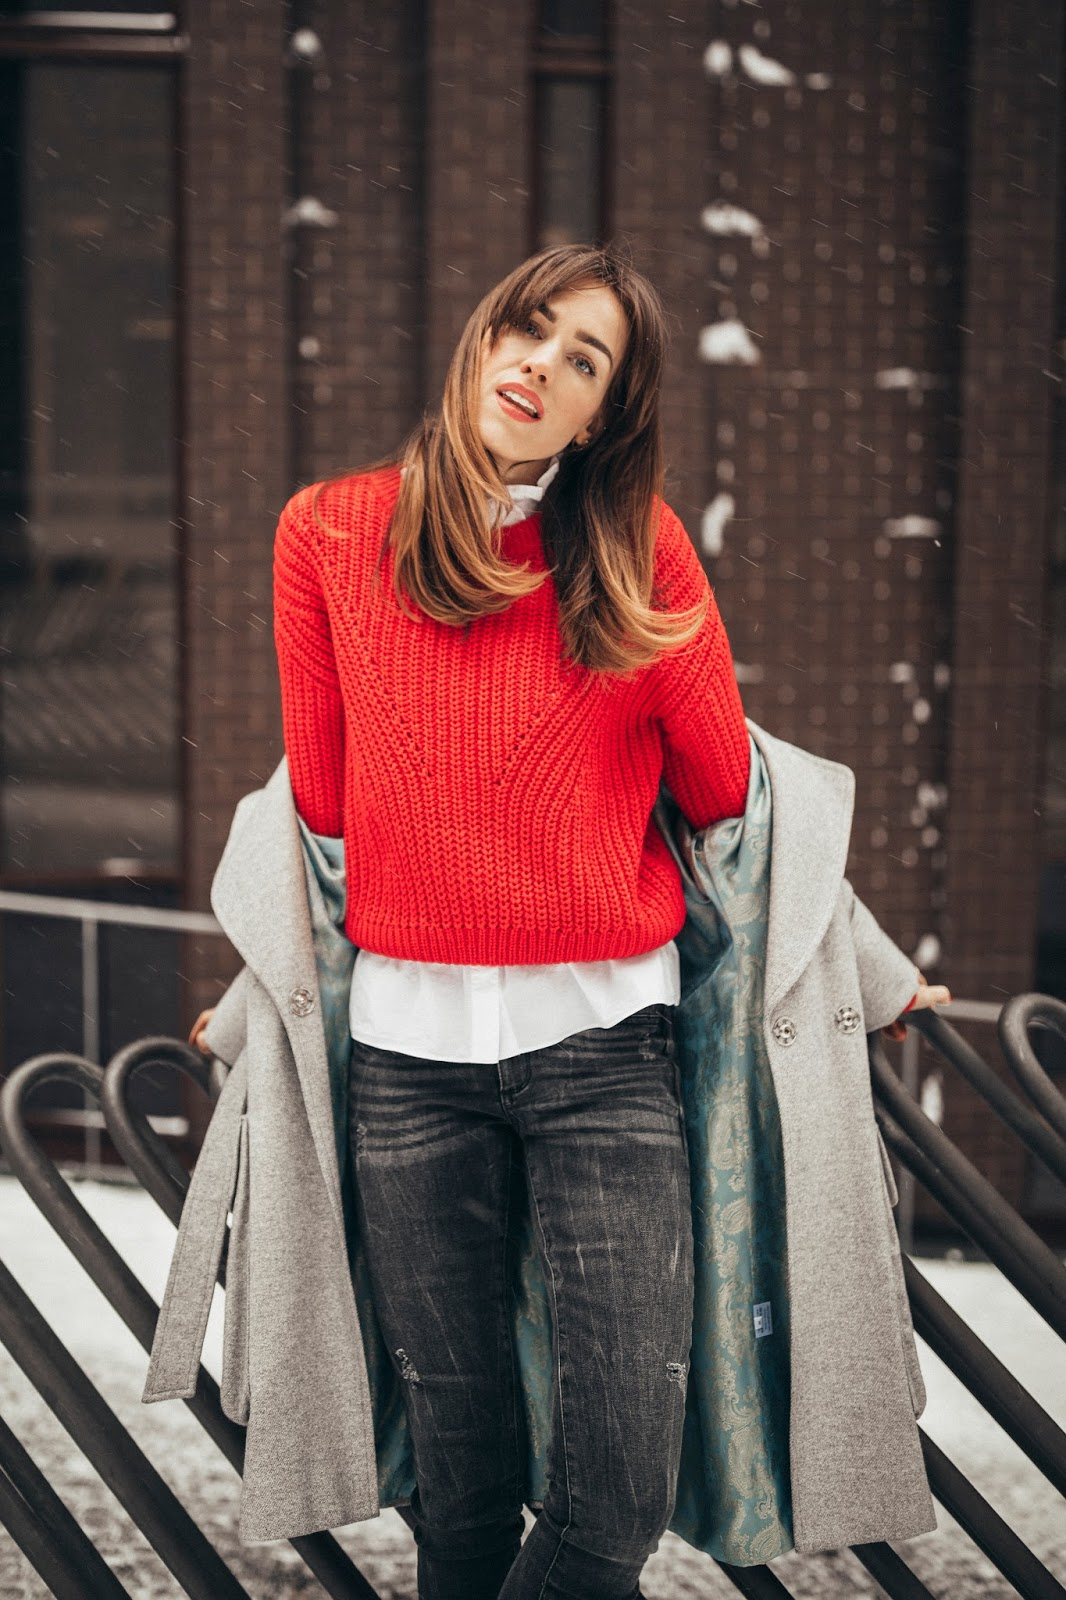 red cable knit sweater outfit winter